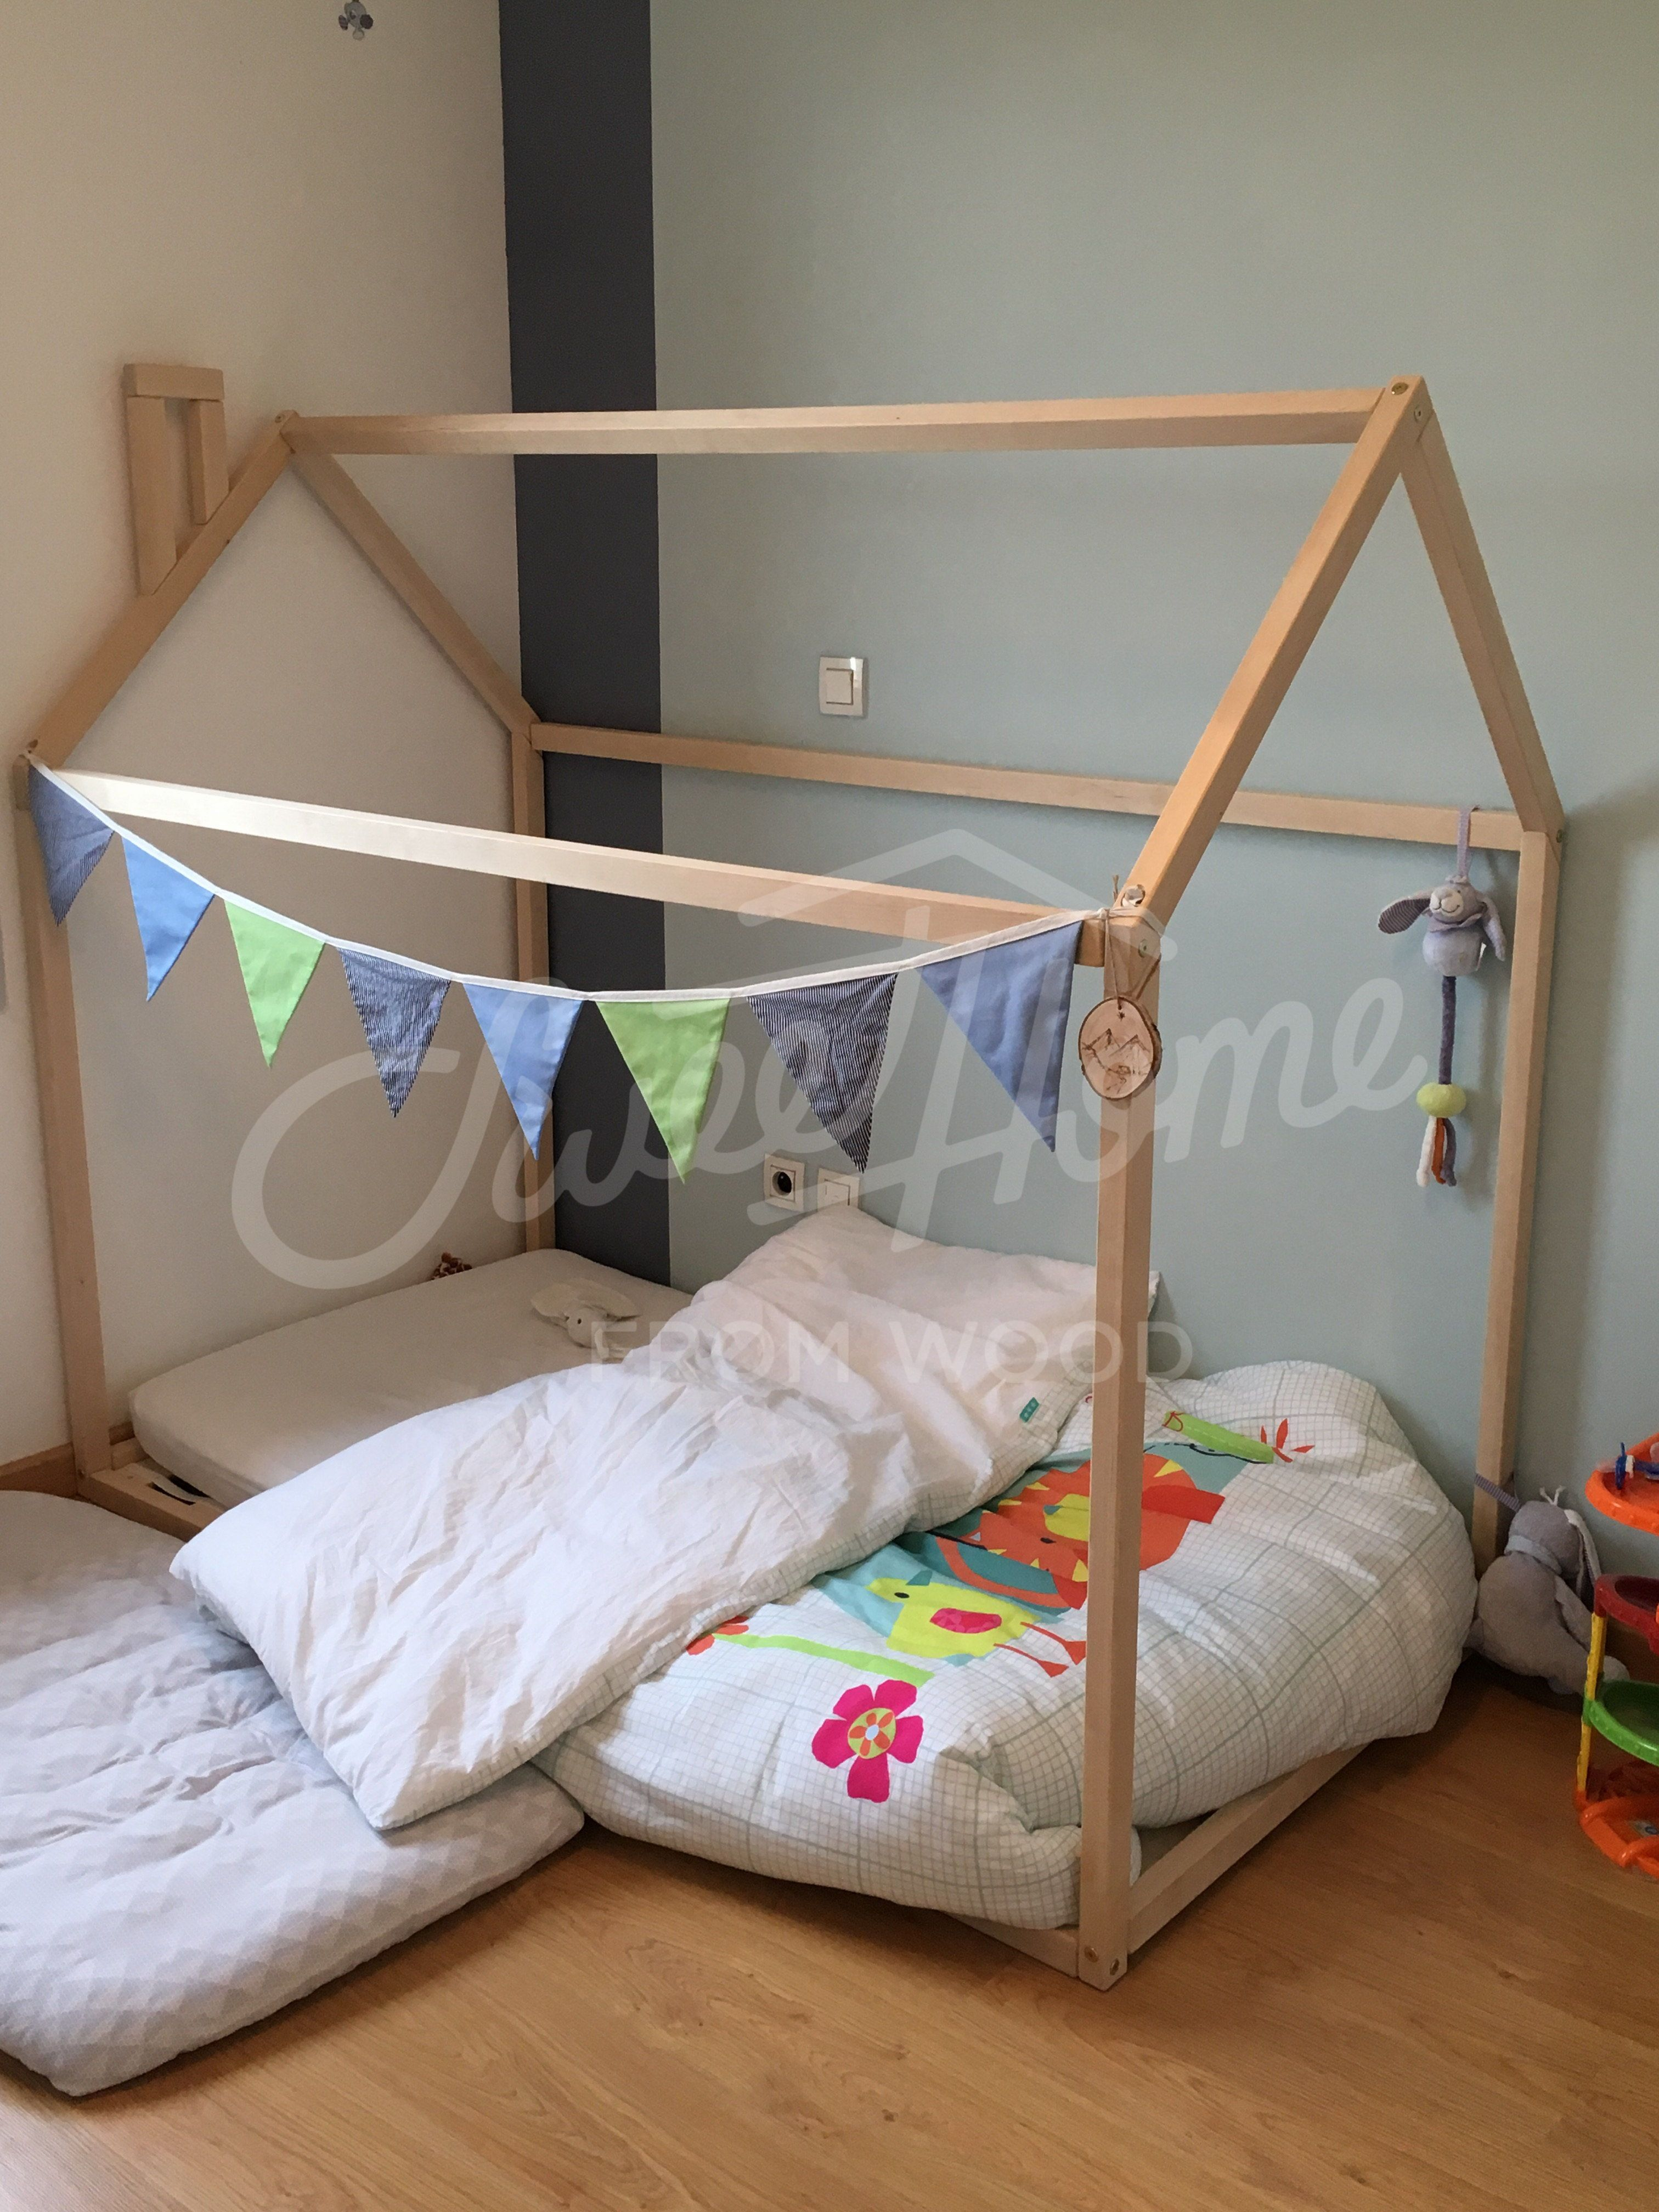 Toddler Bed House Shaped Bed Loft Bed Nursery Wood House Bed Home Montessori Toy Frame Bed Original Bed Home Bed Developing Toy Slats House Beds Kids Room Accessories Kids Bed Frames